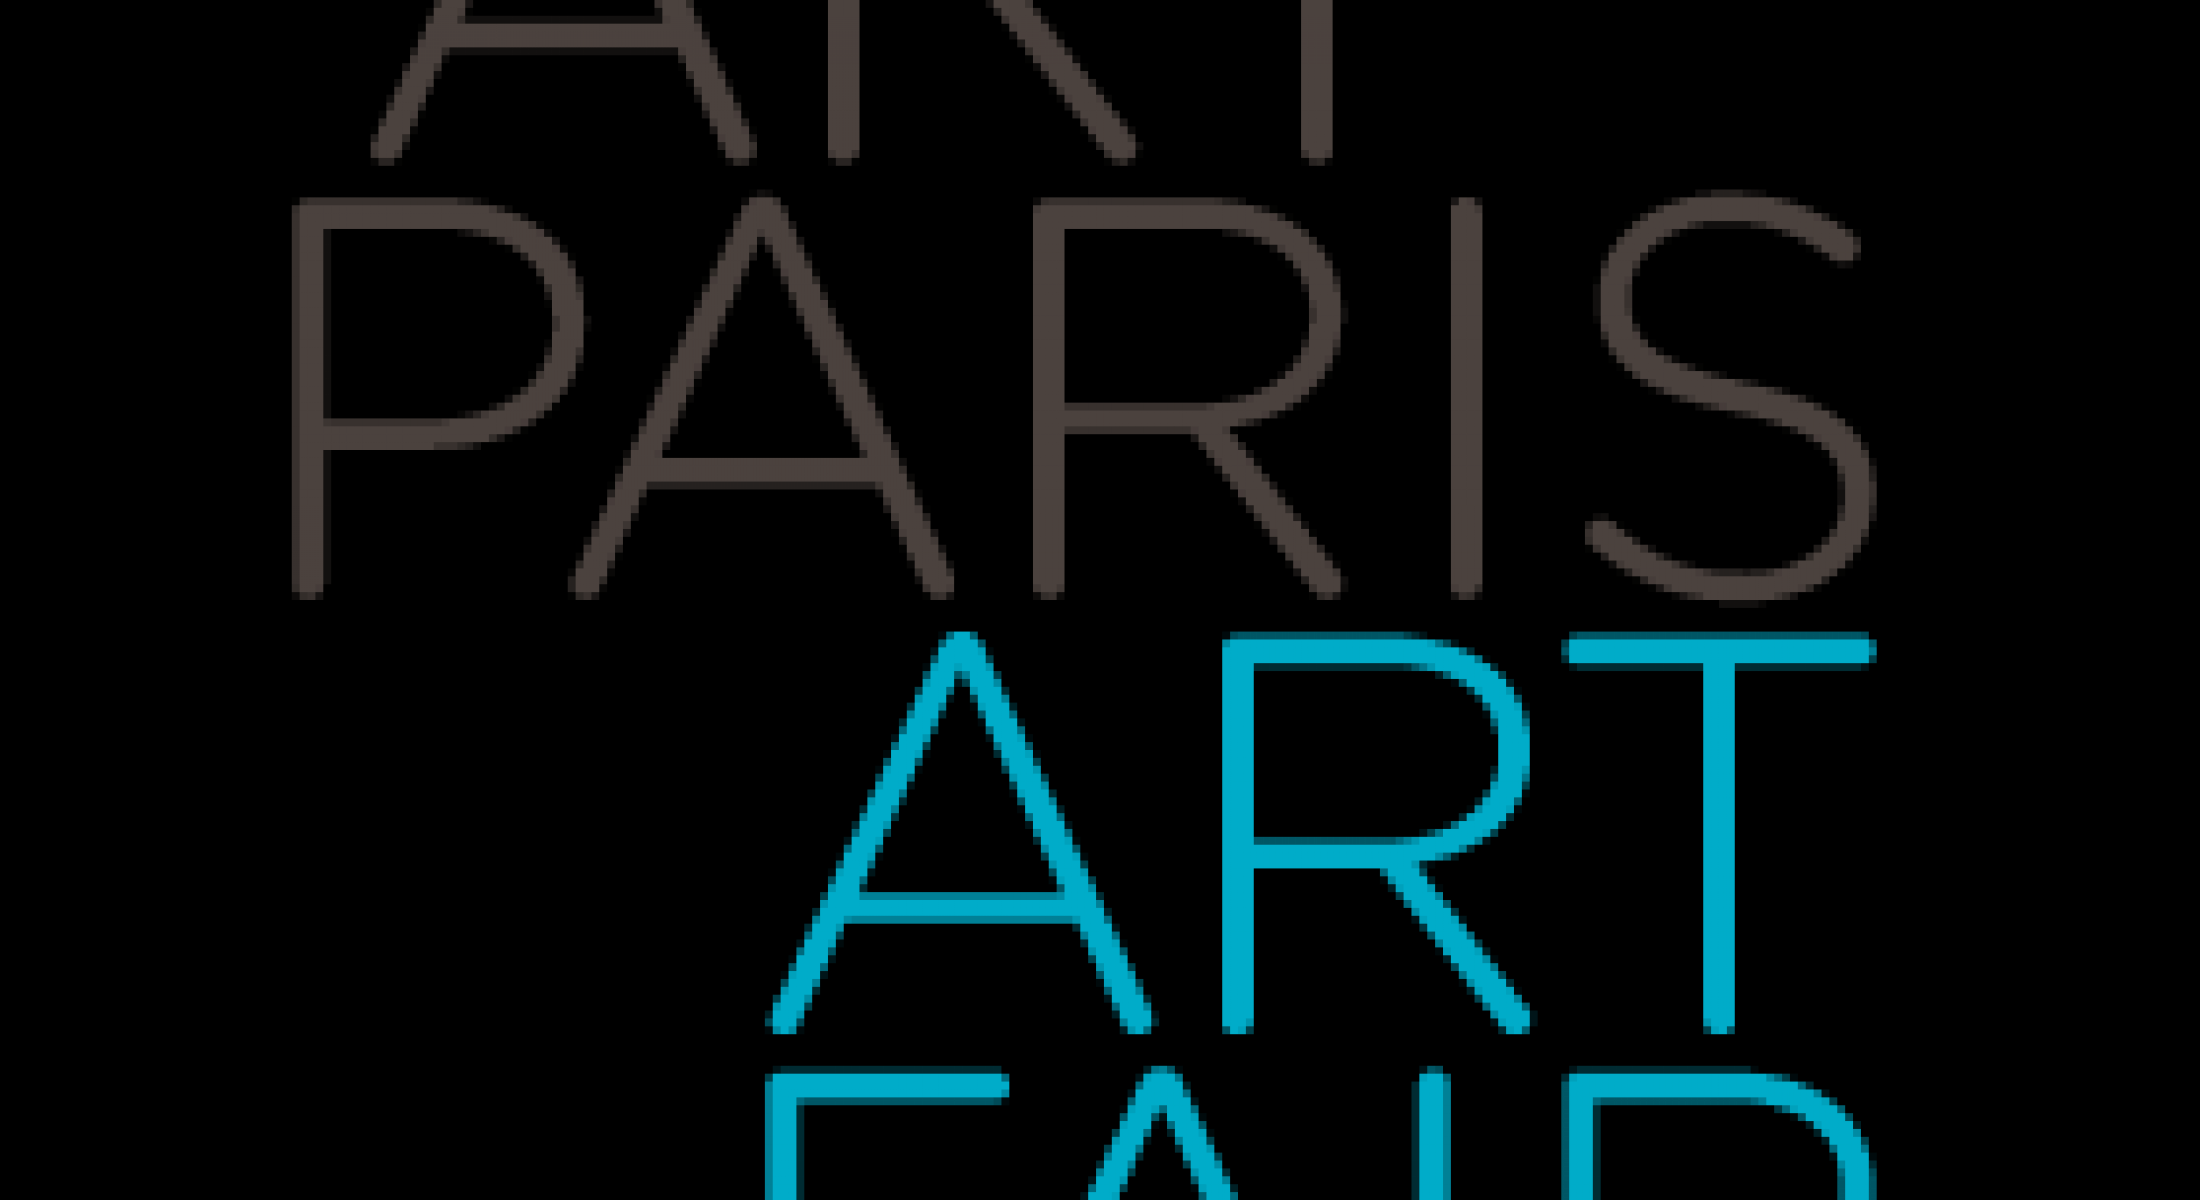 Chefs d'oeuvre de la collection Emil Bührle